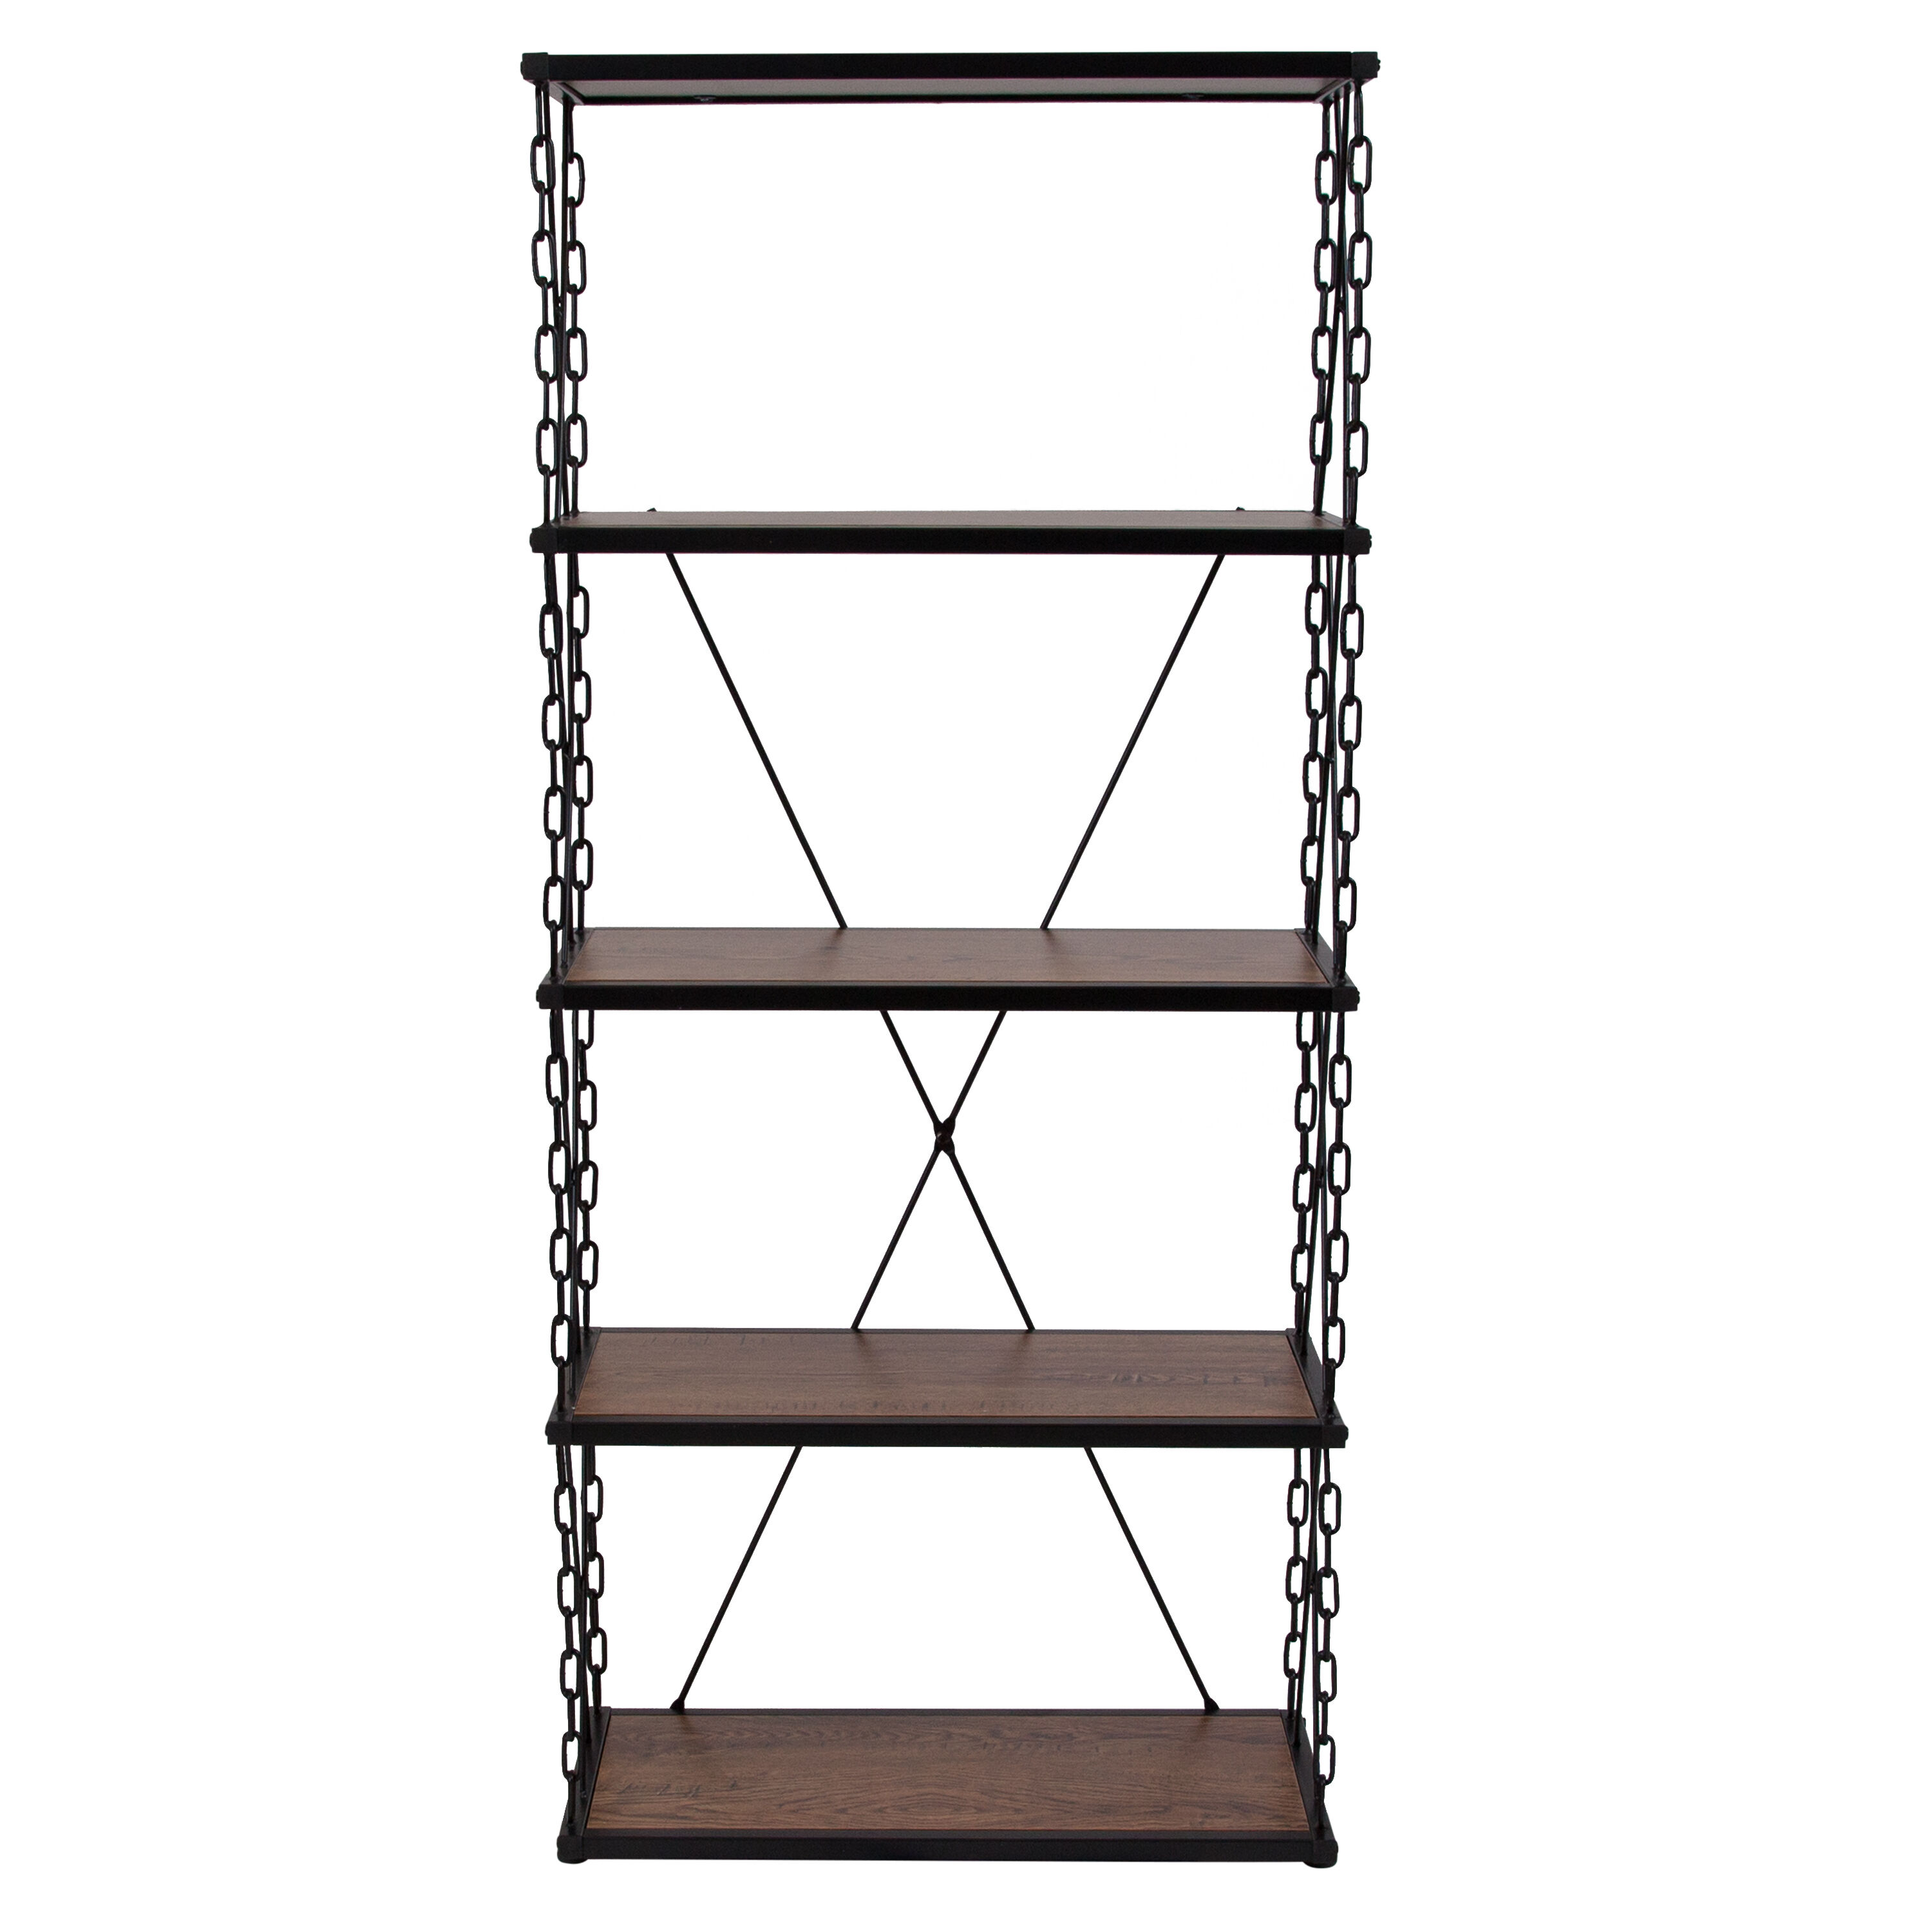 ... Our Vernon Hills Collection Antique Wood Grain Finish Four Shelf  Bookshelf With Chain Accent Metal Frame ...